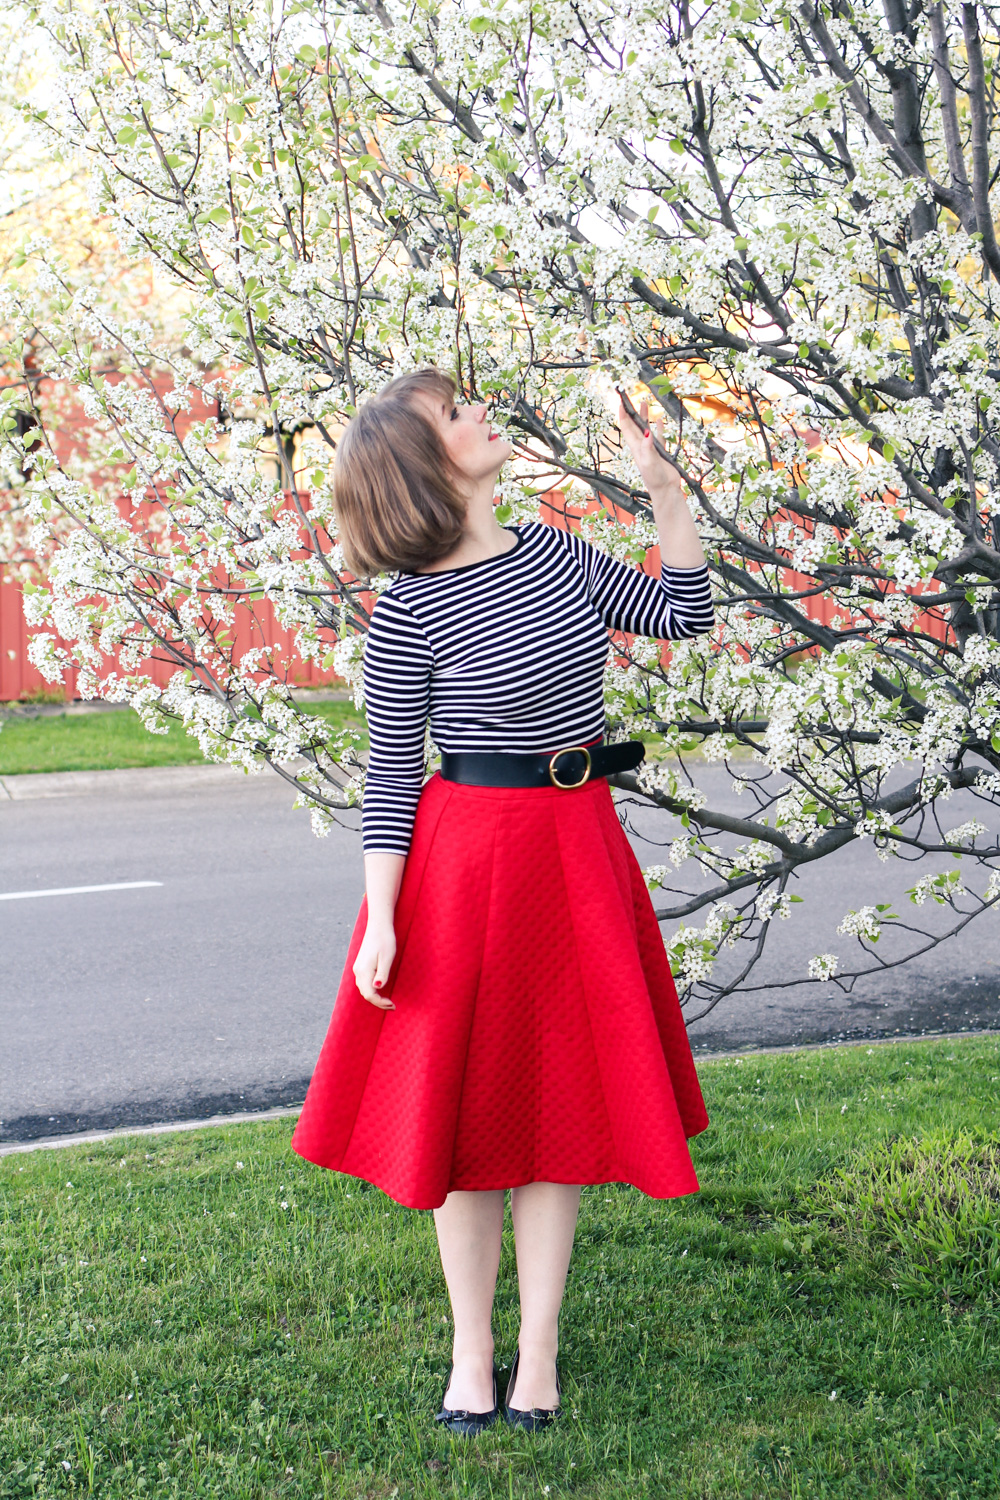 @findingfemme wears red skirt with white cherry blossoms in Ballarat